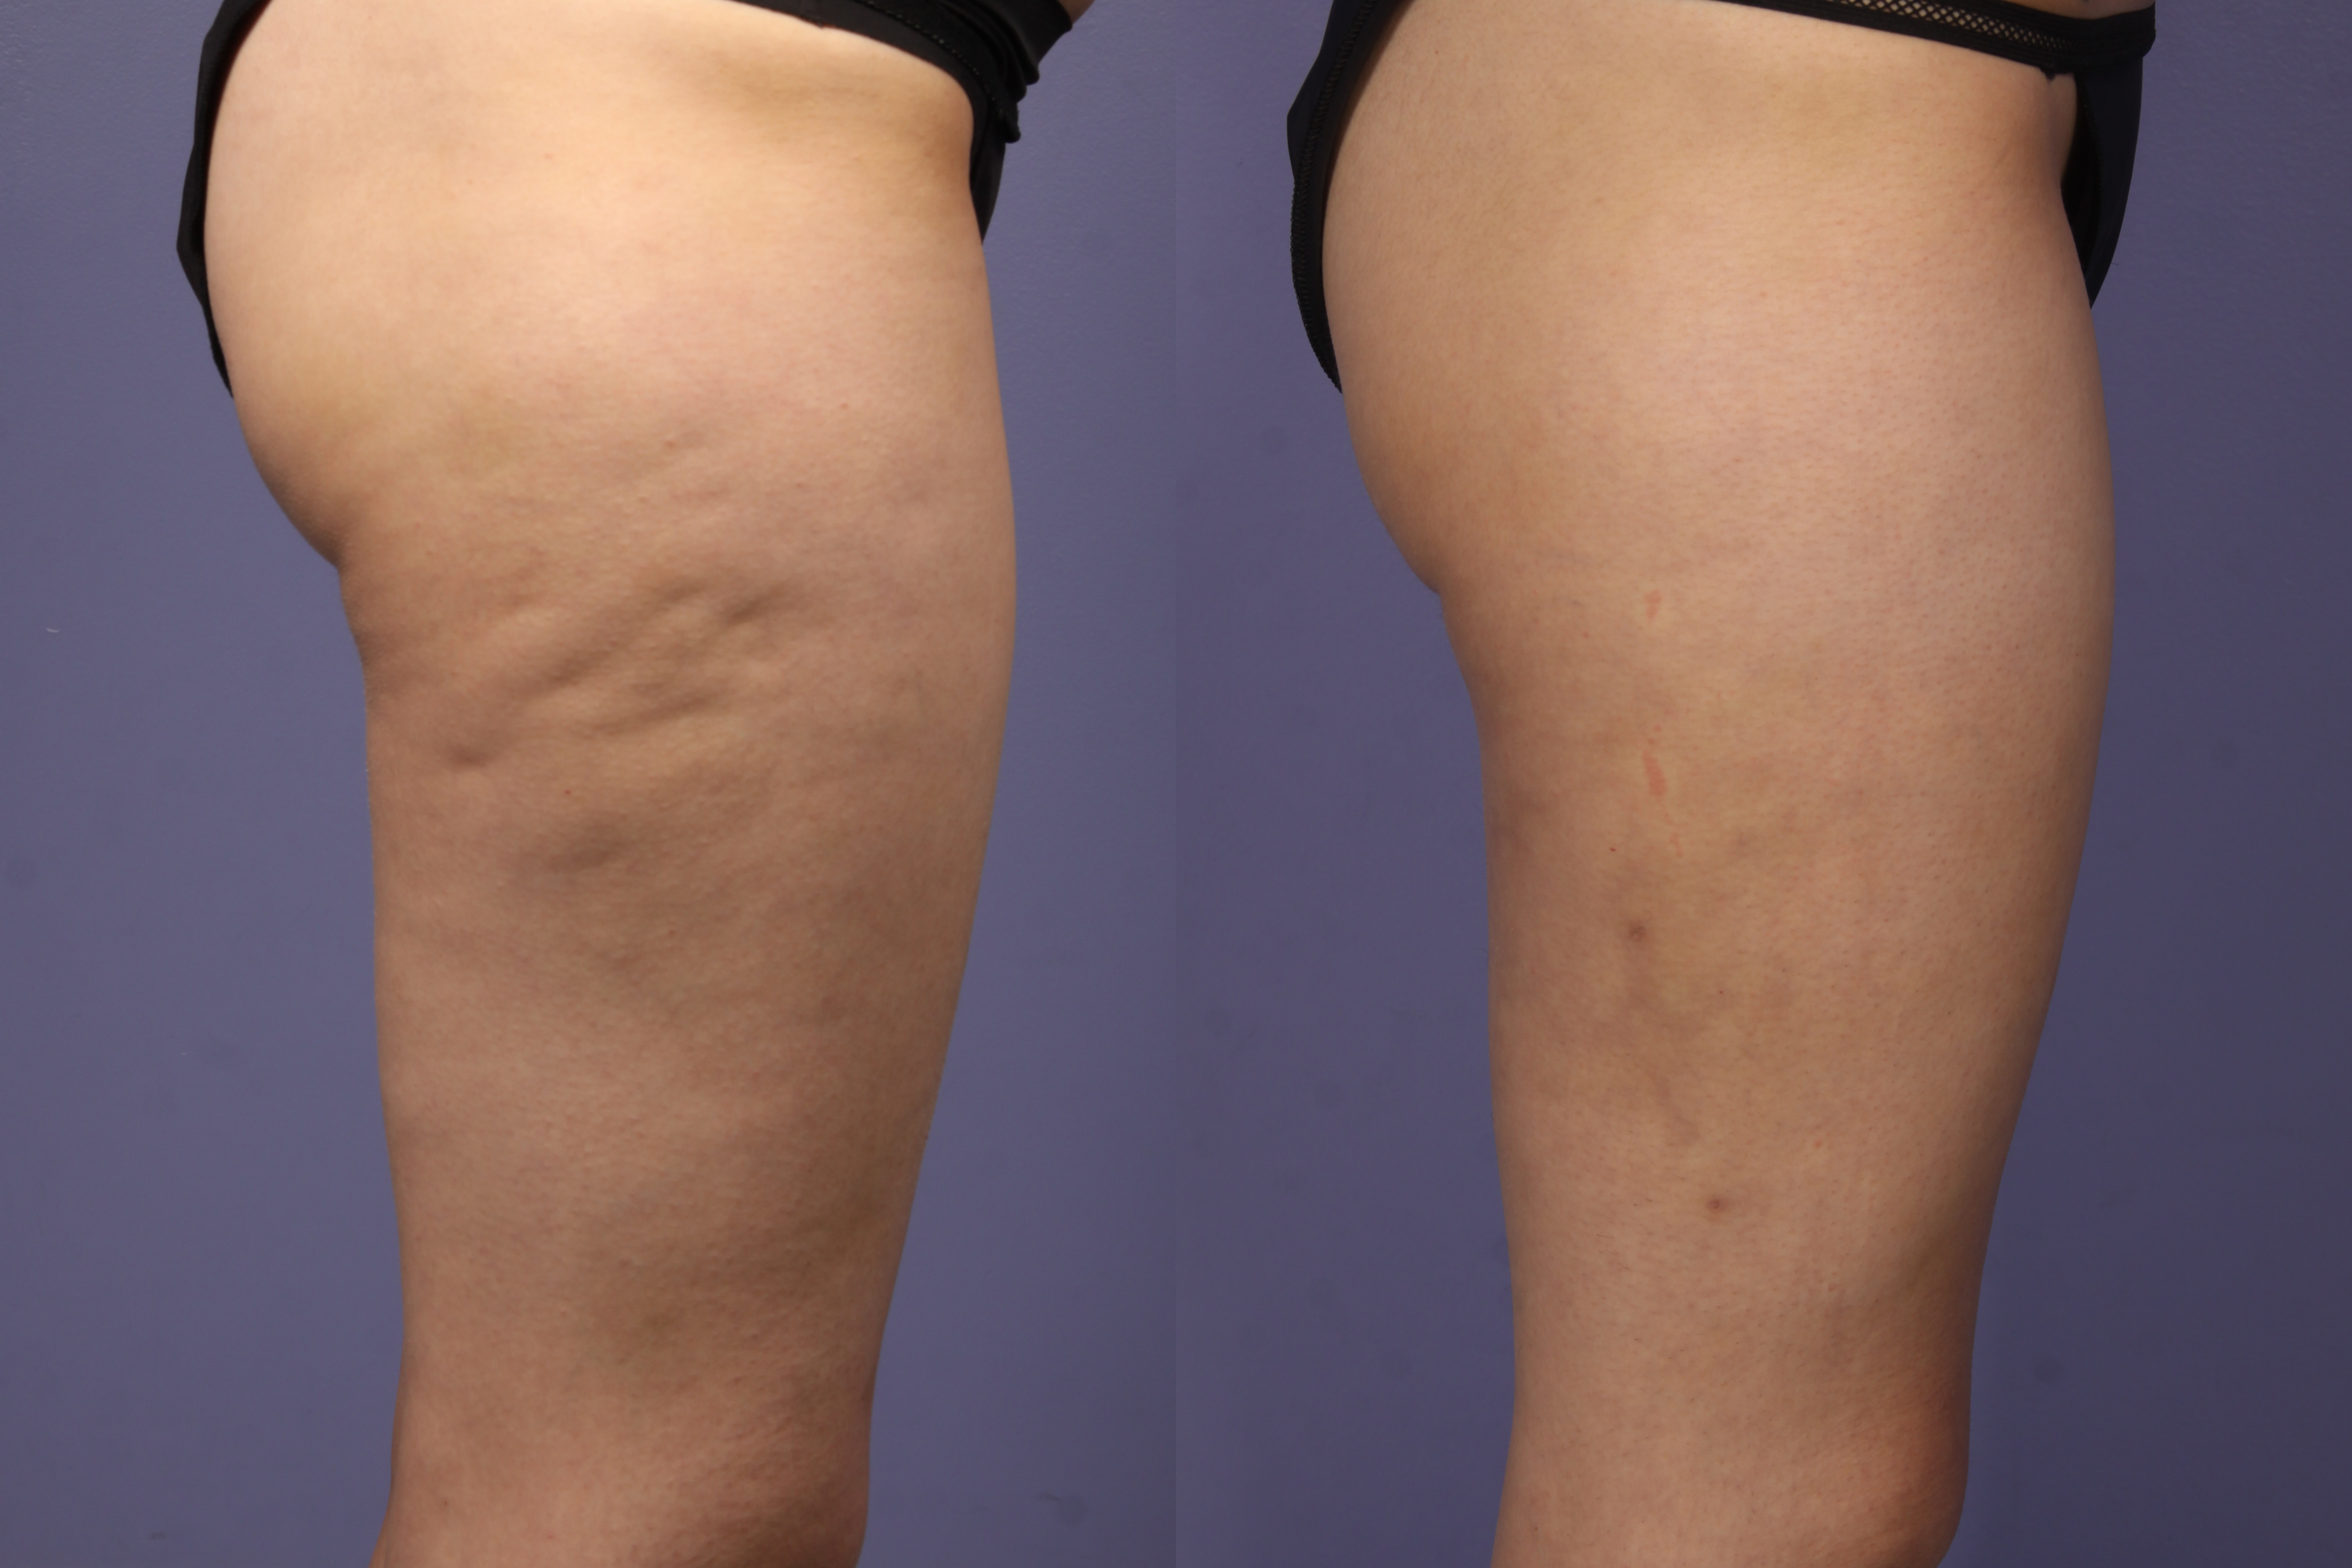 How Do Guys Really Feel About Cellulite